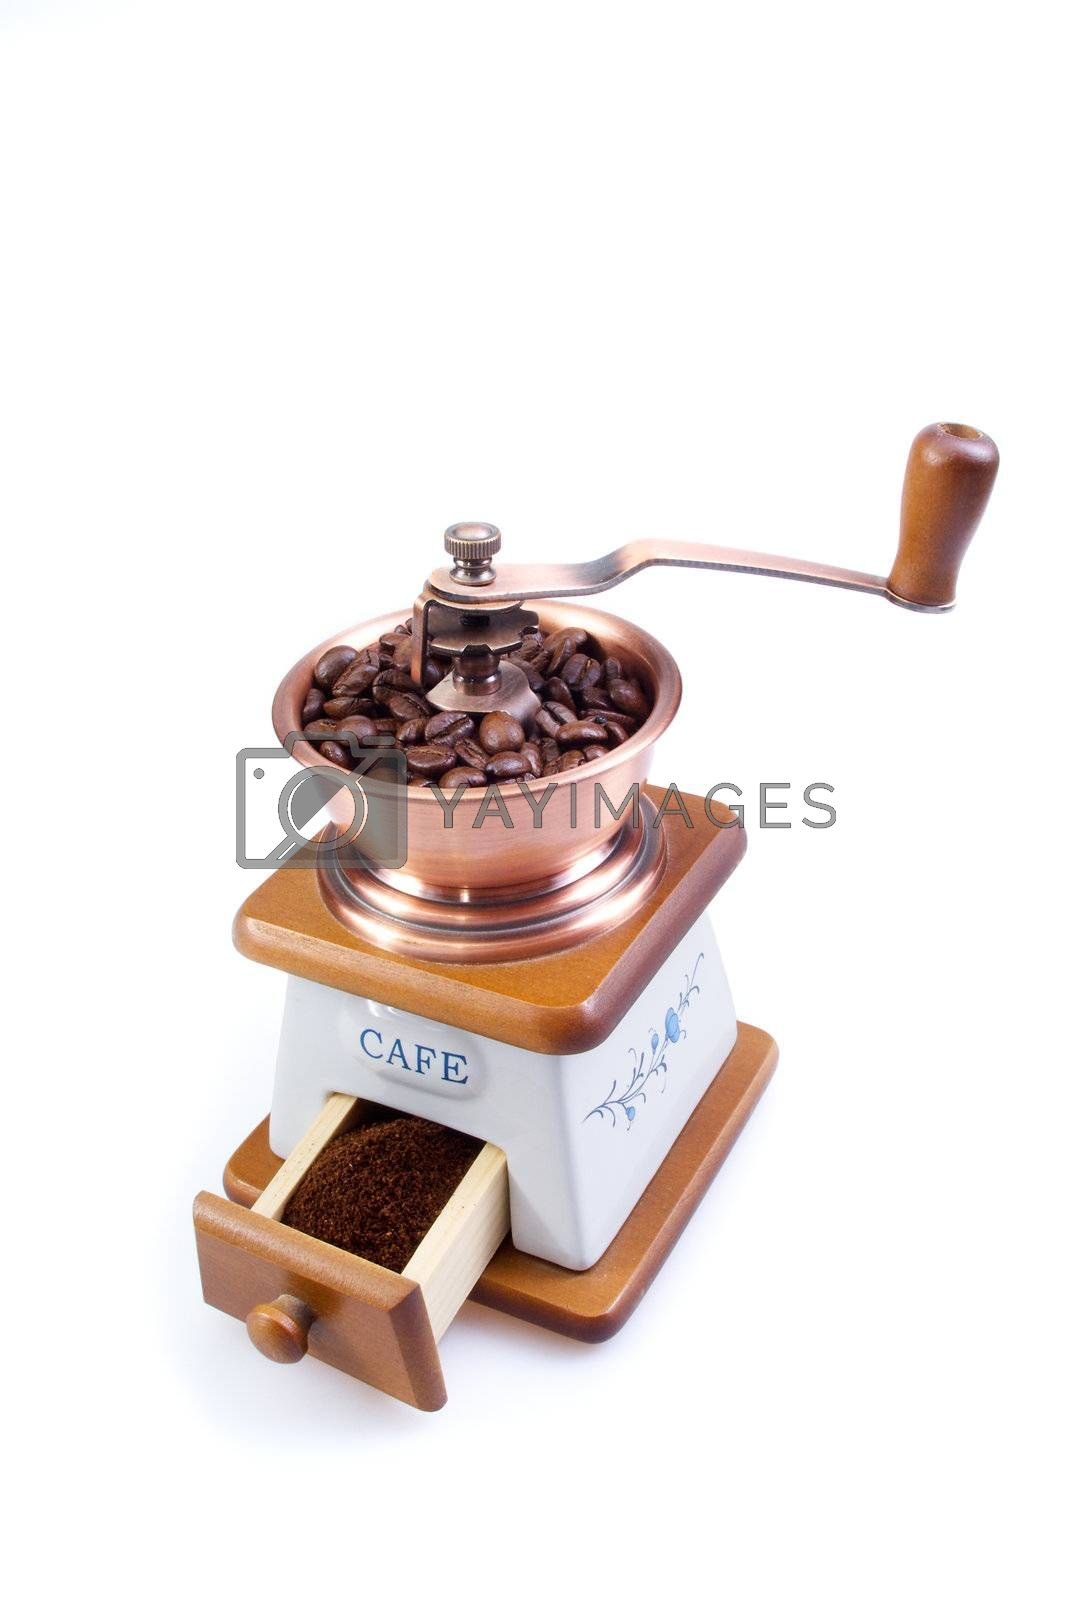 Royalty free image of The ancient coffee grinder with coffee grains by BIG_TAU